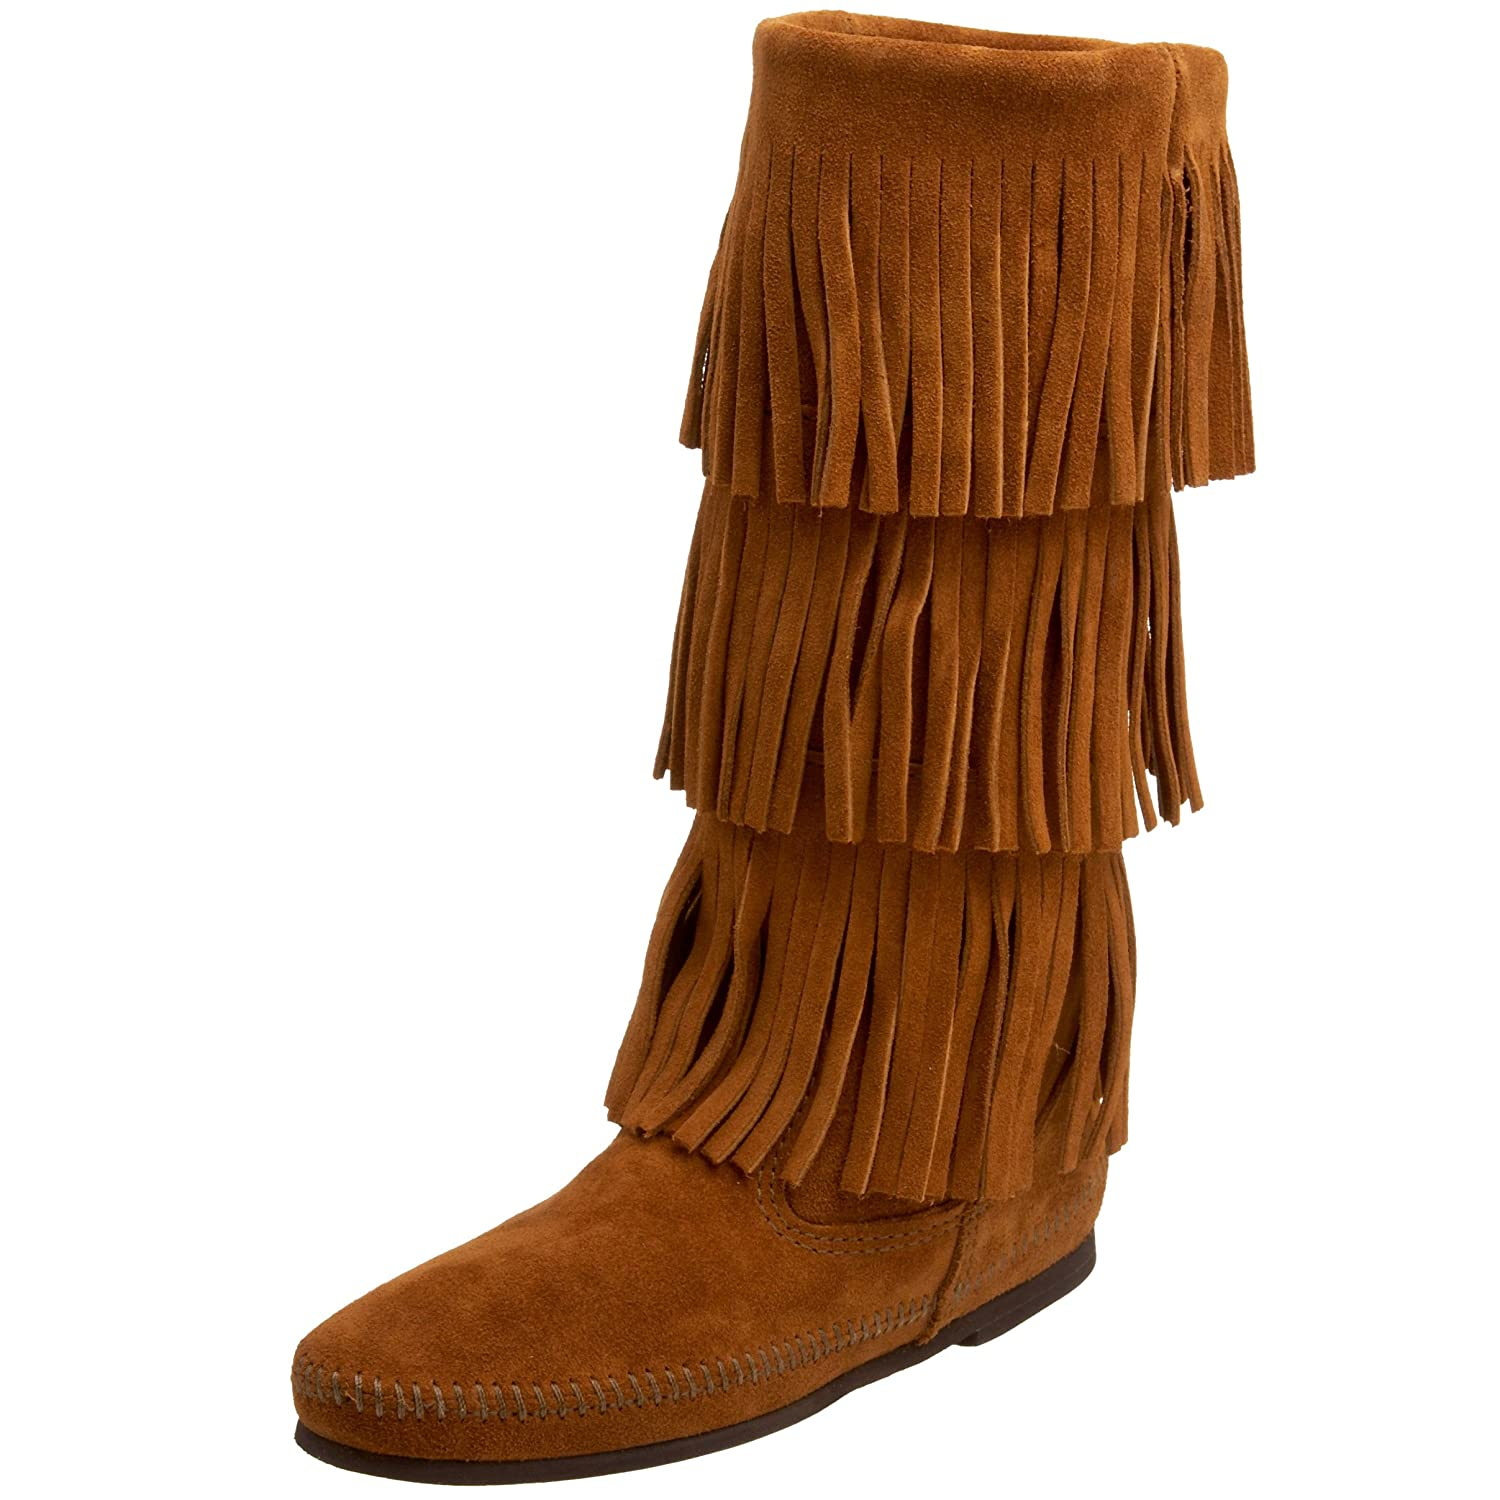 Minnetonka Women's 3-Layer Fringe Boot B01FGR5MFY 5 B(M) US|Brown Suede